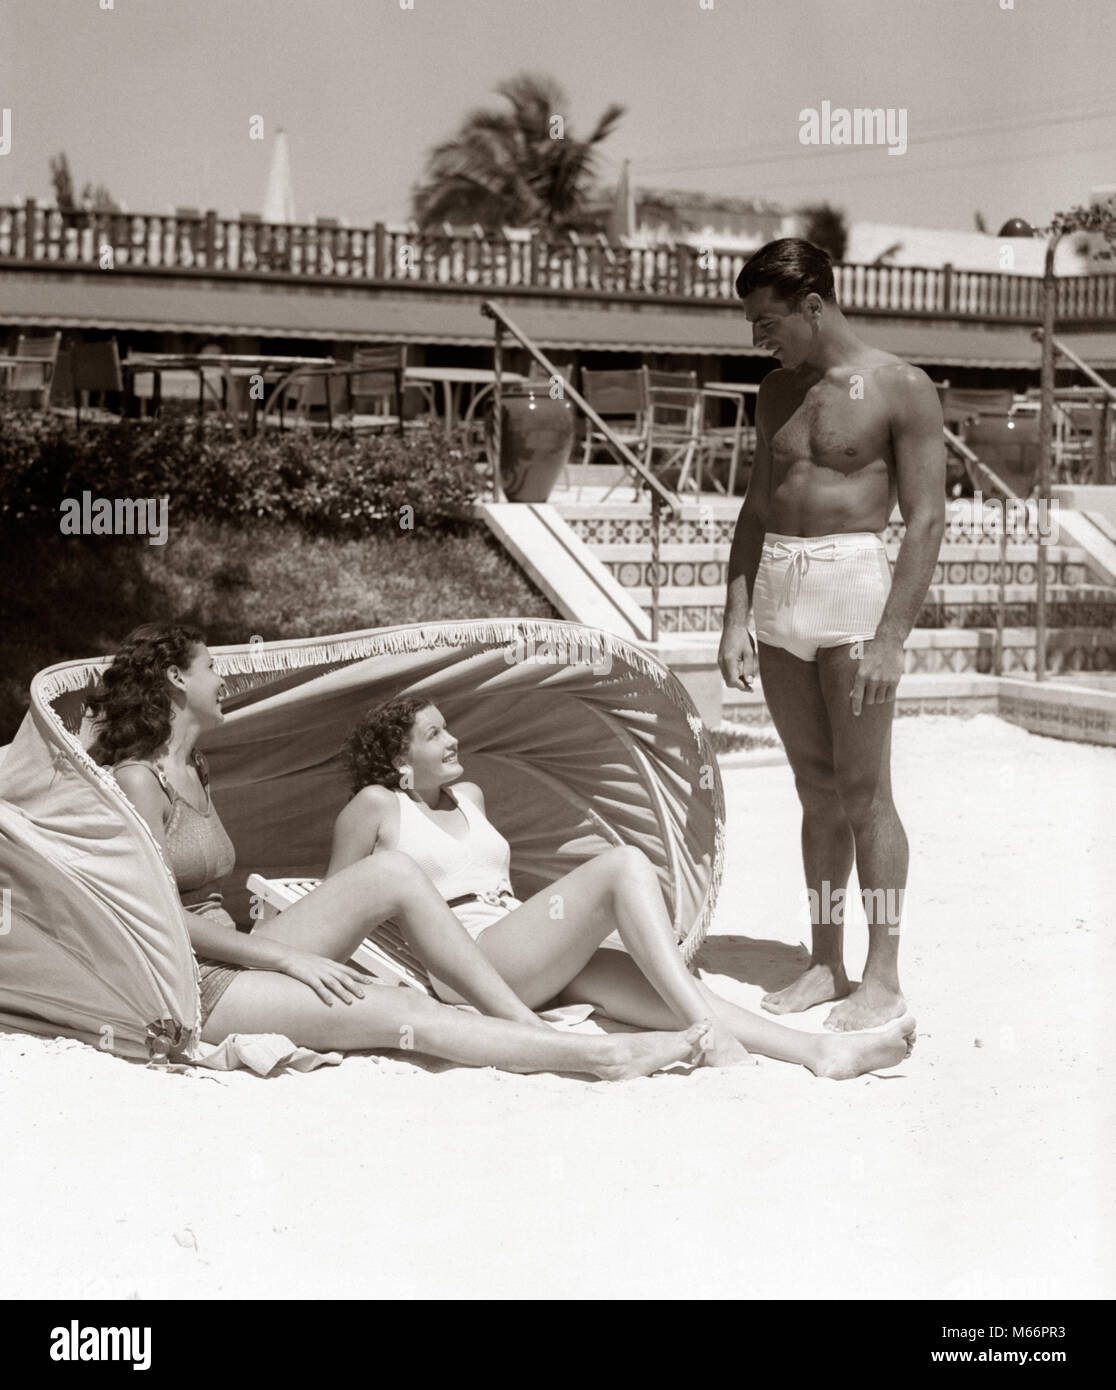 3c45393e05db3 1930s 1940s MAN BATHING TRUNKS TALKING TO TWO WOMEN LAYING UNDER HOTEL  CANVAS SUN SCREEN TROPICAL